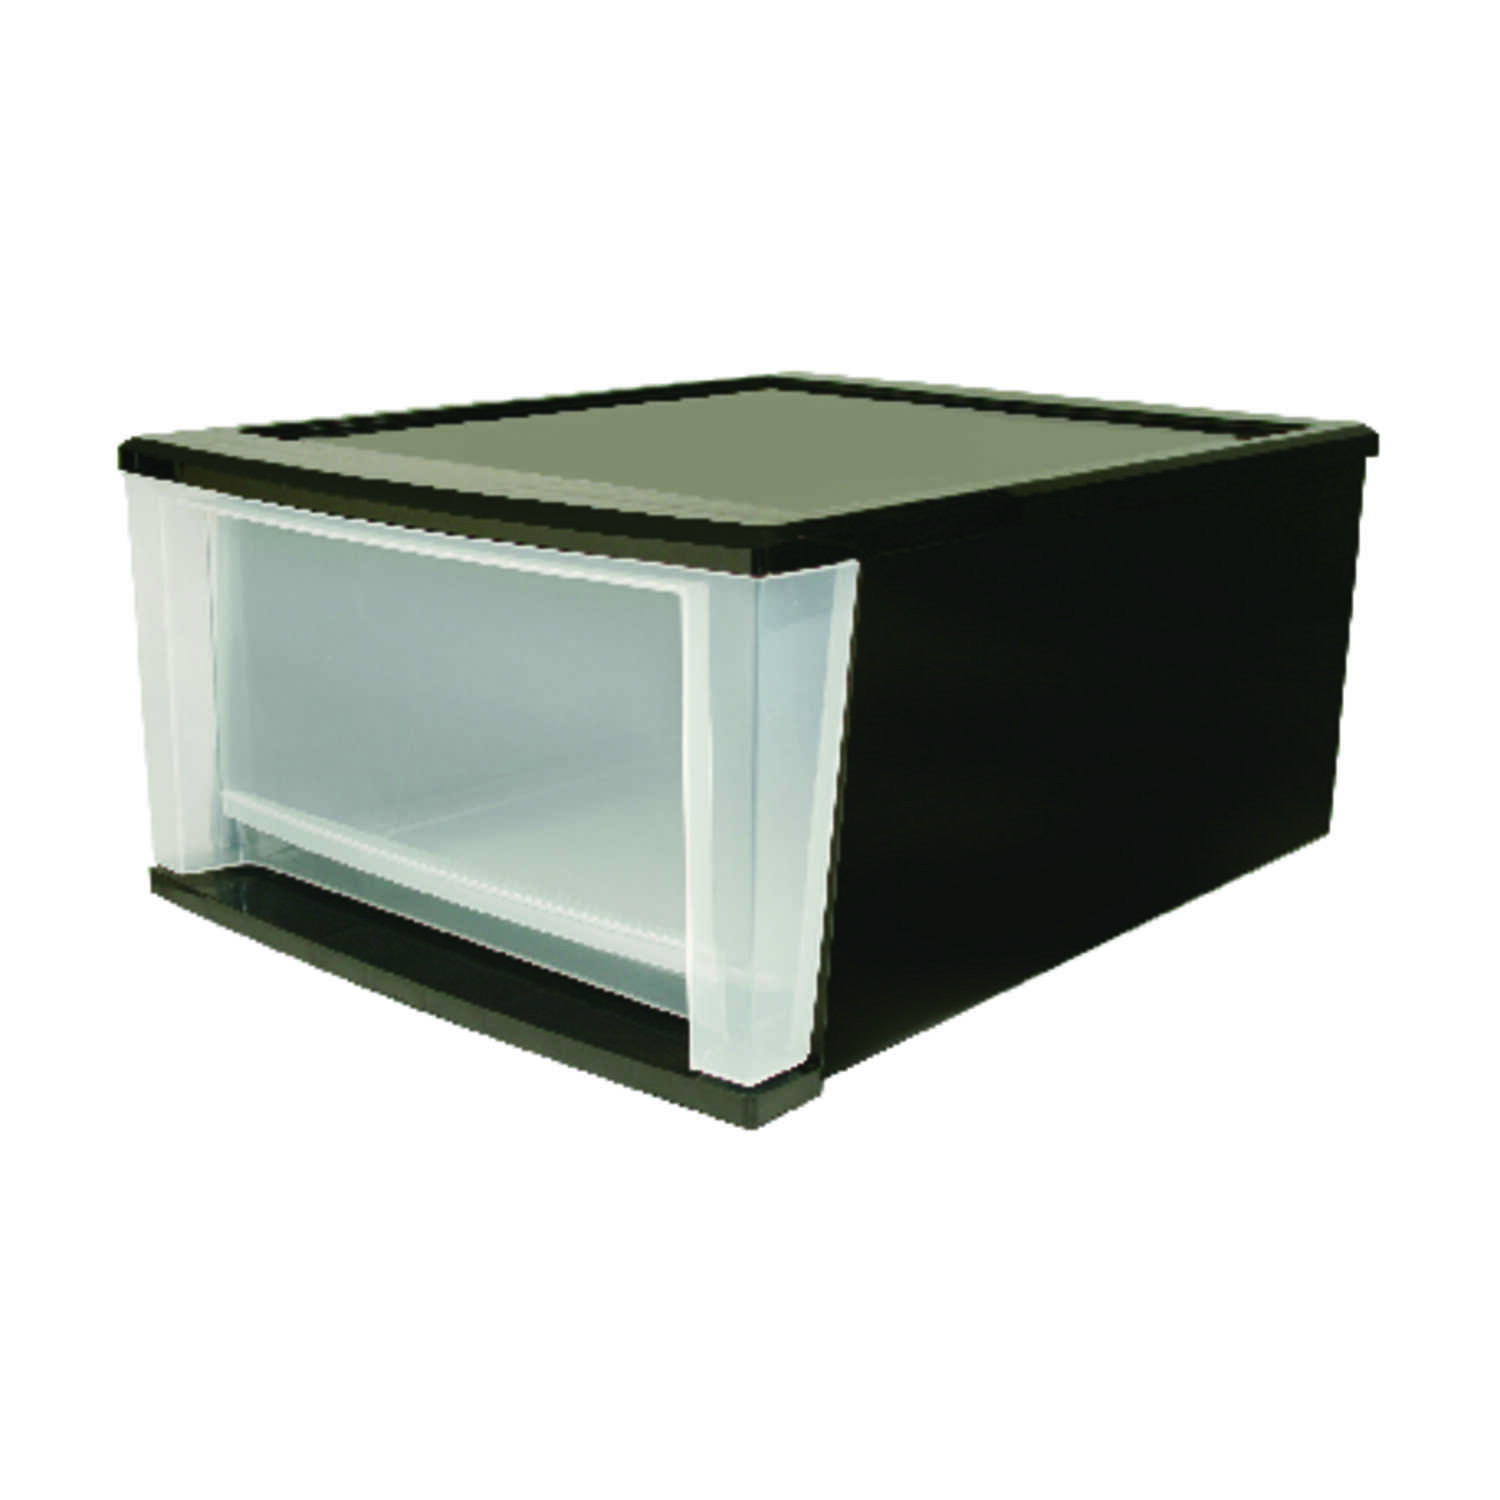 Iris  12.05 in. W x 14.25 in. L x 8.4 in. H Plastic  Drawer Organizer  Clear/Black